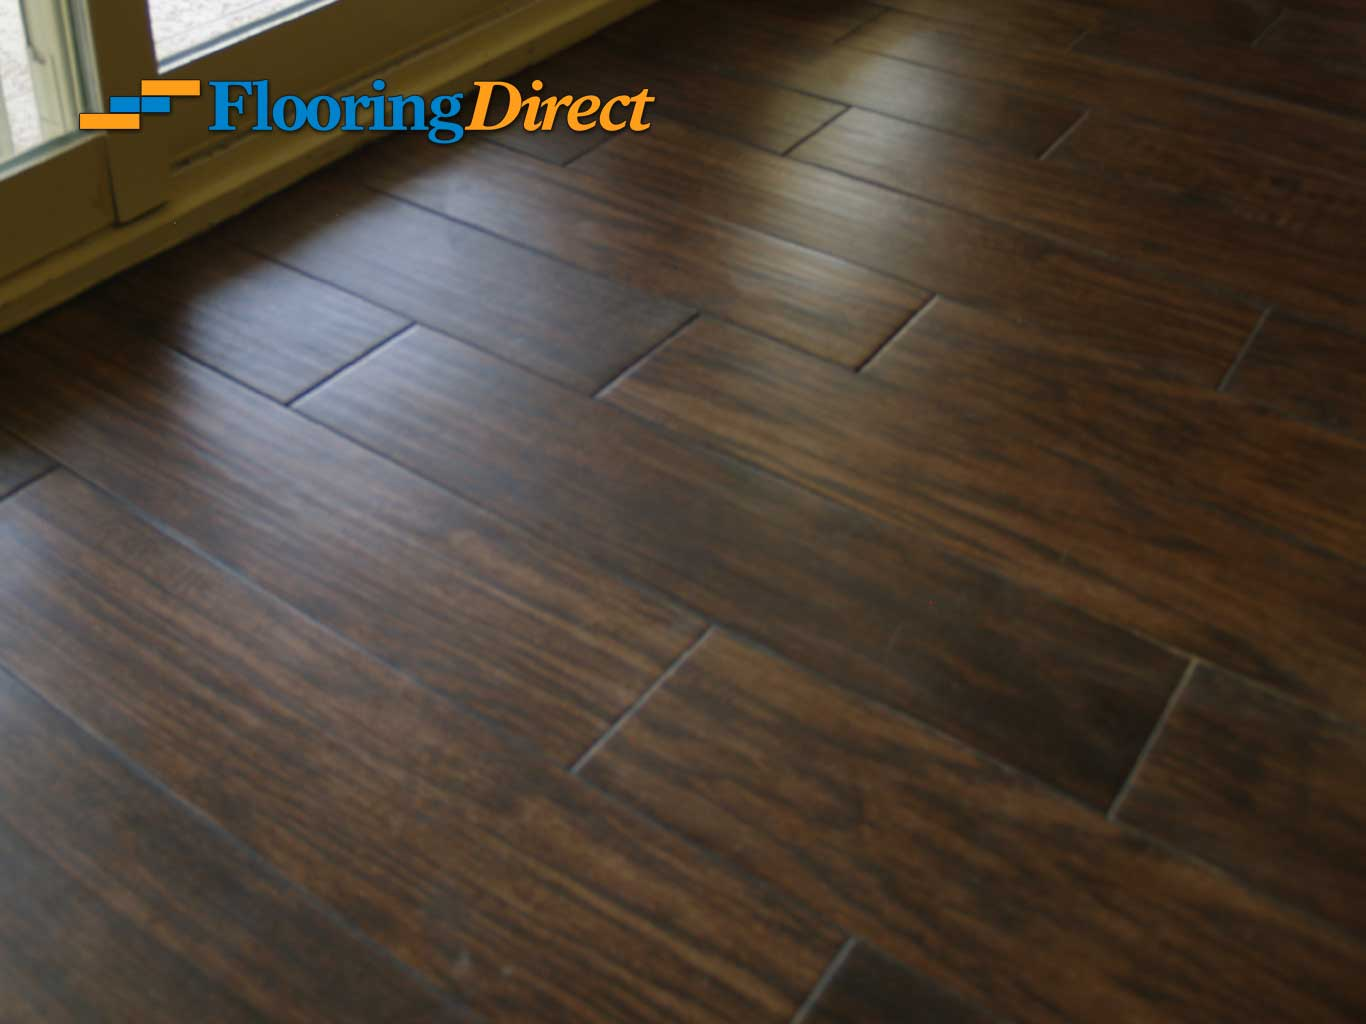 Wood look tile flooring serving all of dfw flooring direct for All floors